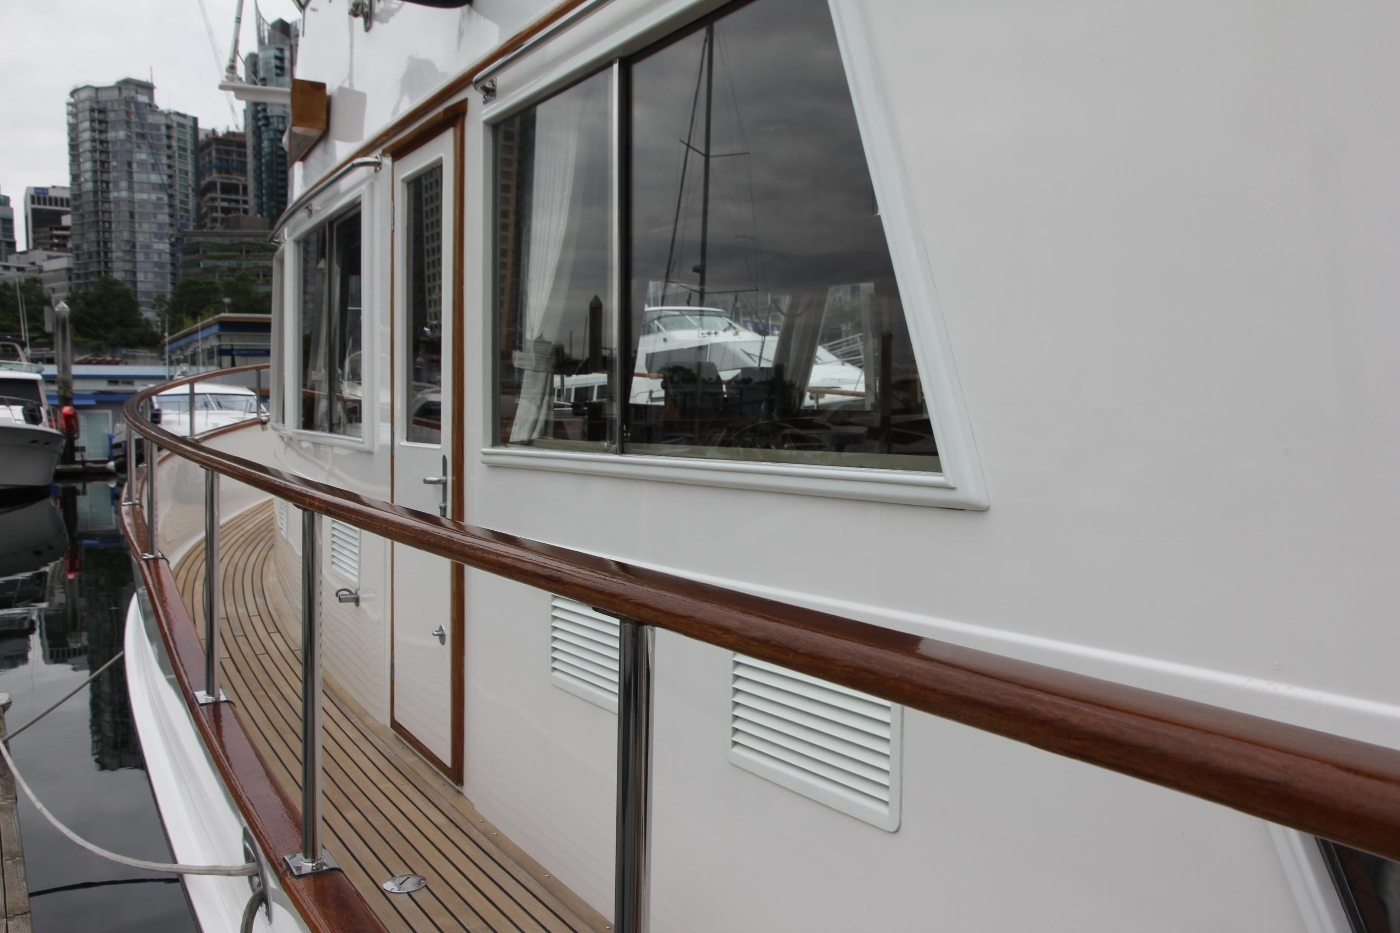 2001 Grand Banks 42 Classic, Portside Deck and Window